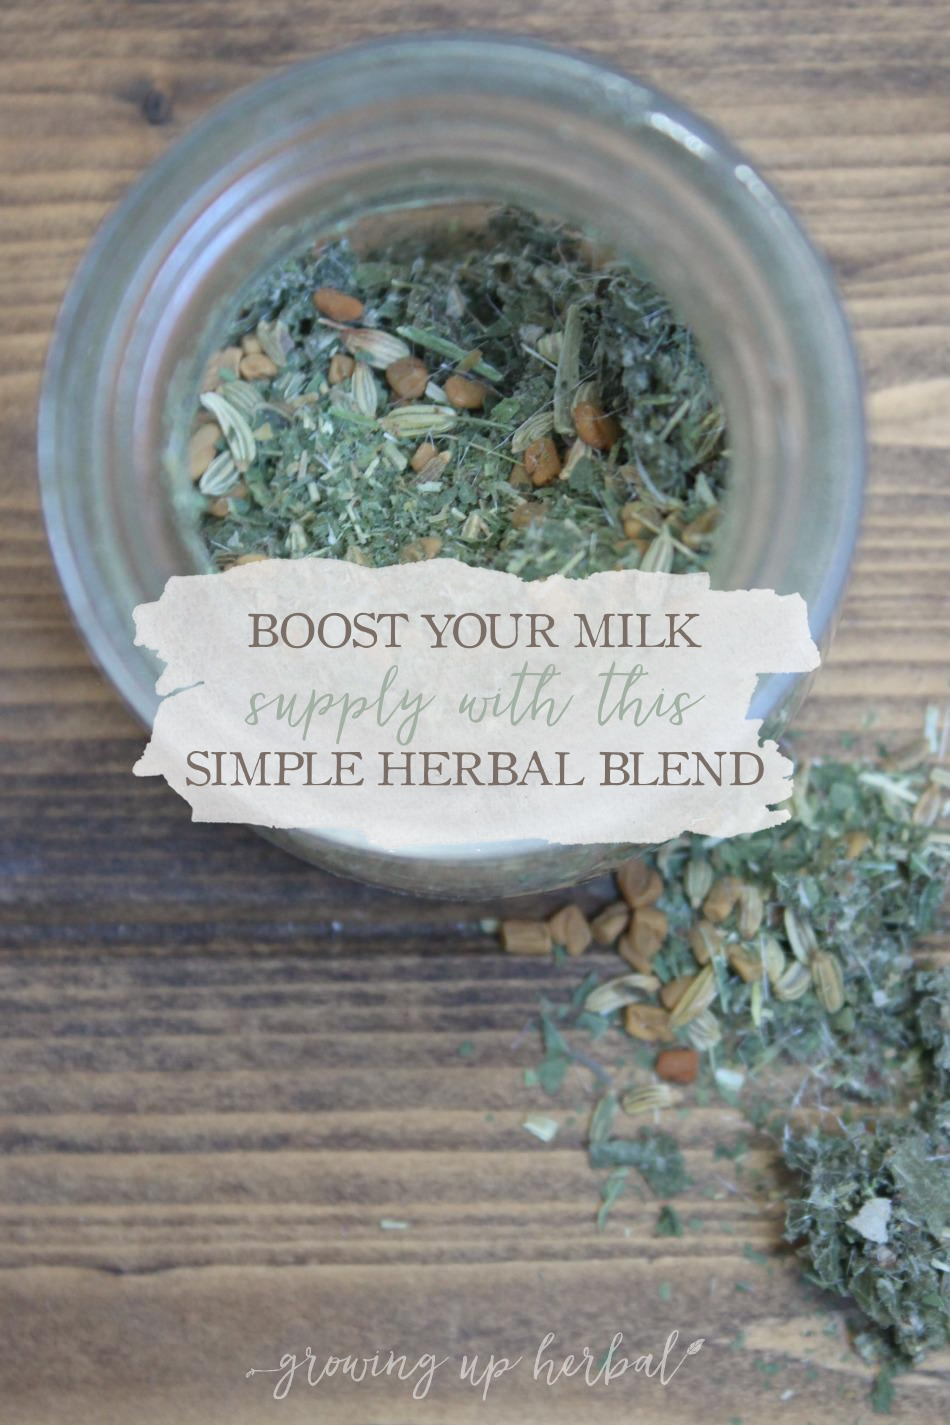 How To Boost Your Milk Supply With This Simple Herbal Blend | Growing Up Herbal | If you're a nursing mama and looking for a natural way to boost your milk supply, this herbal blend may be just the thing to help you and your milk supply.